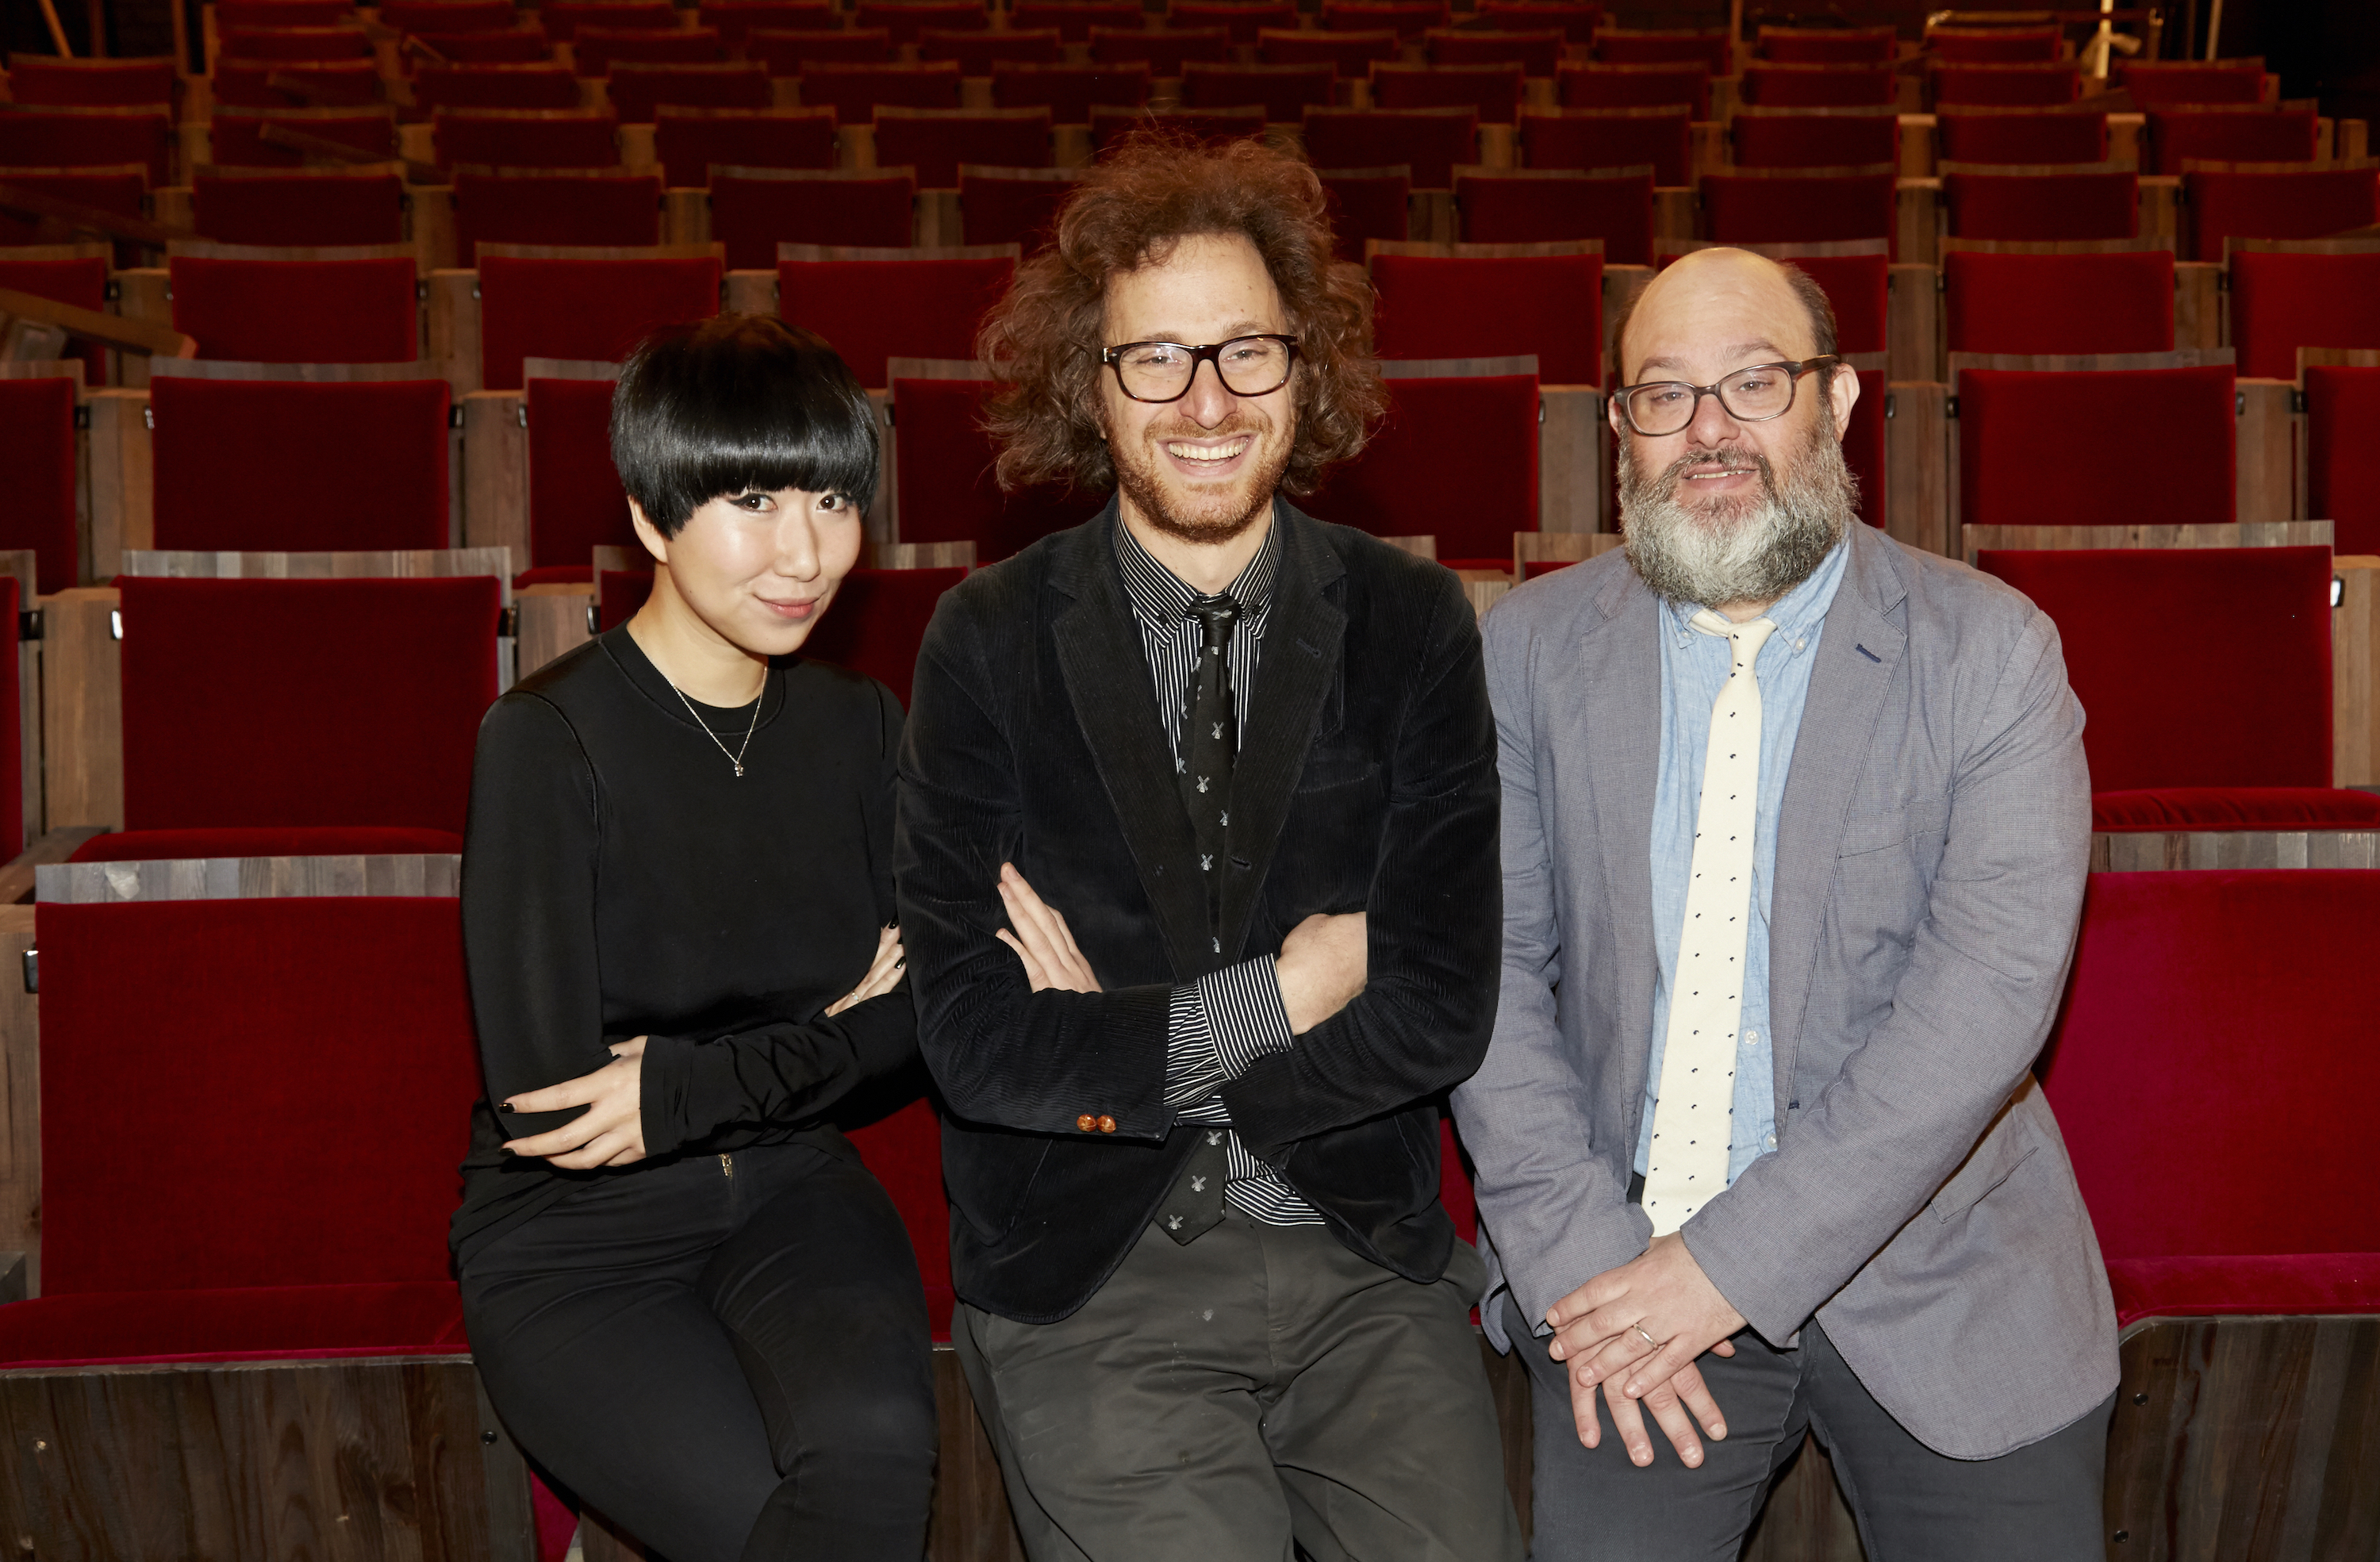 Metrograph program director Aliza Ma, artistic director Jacob Perlin and founder Alexander Olch.